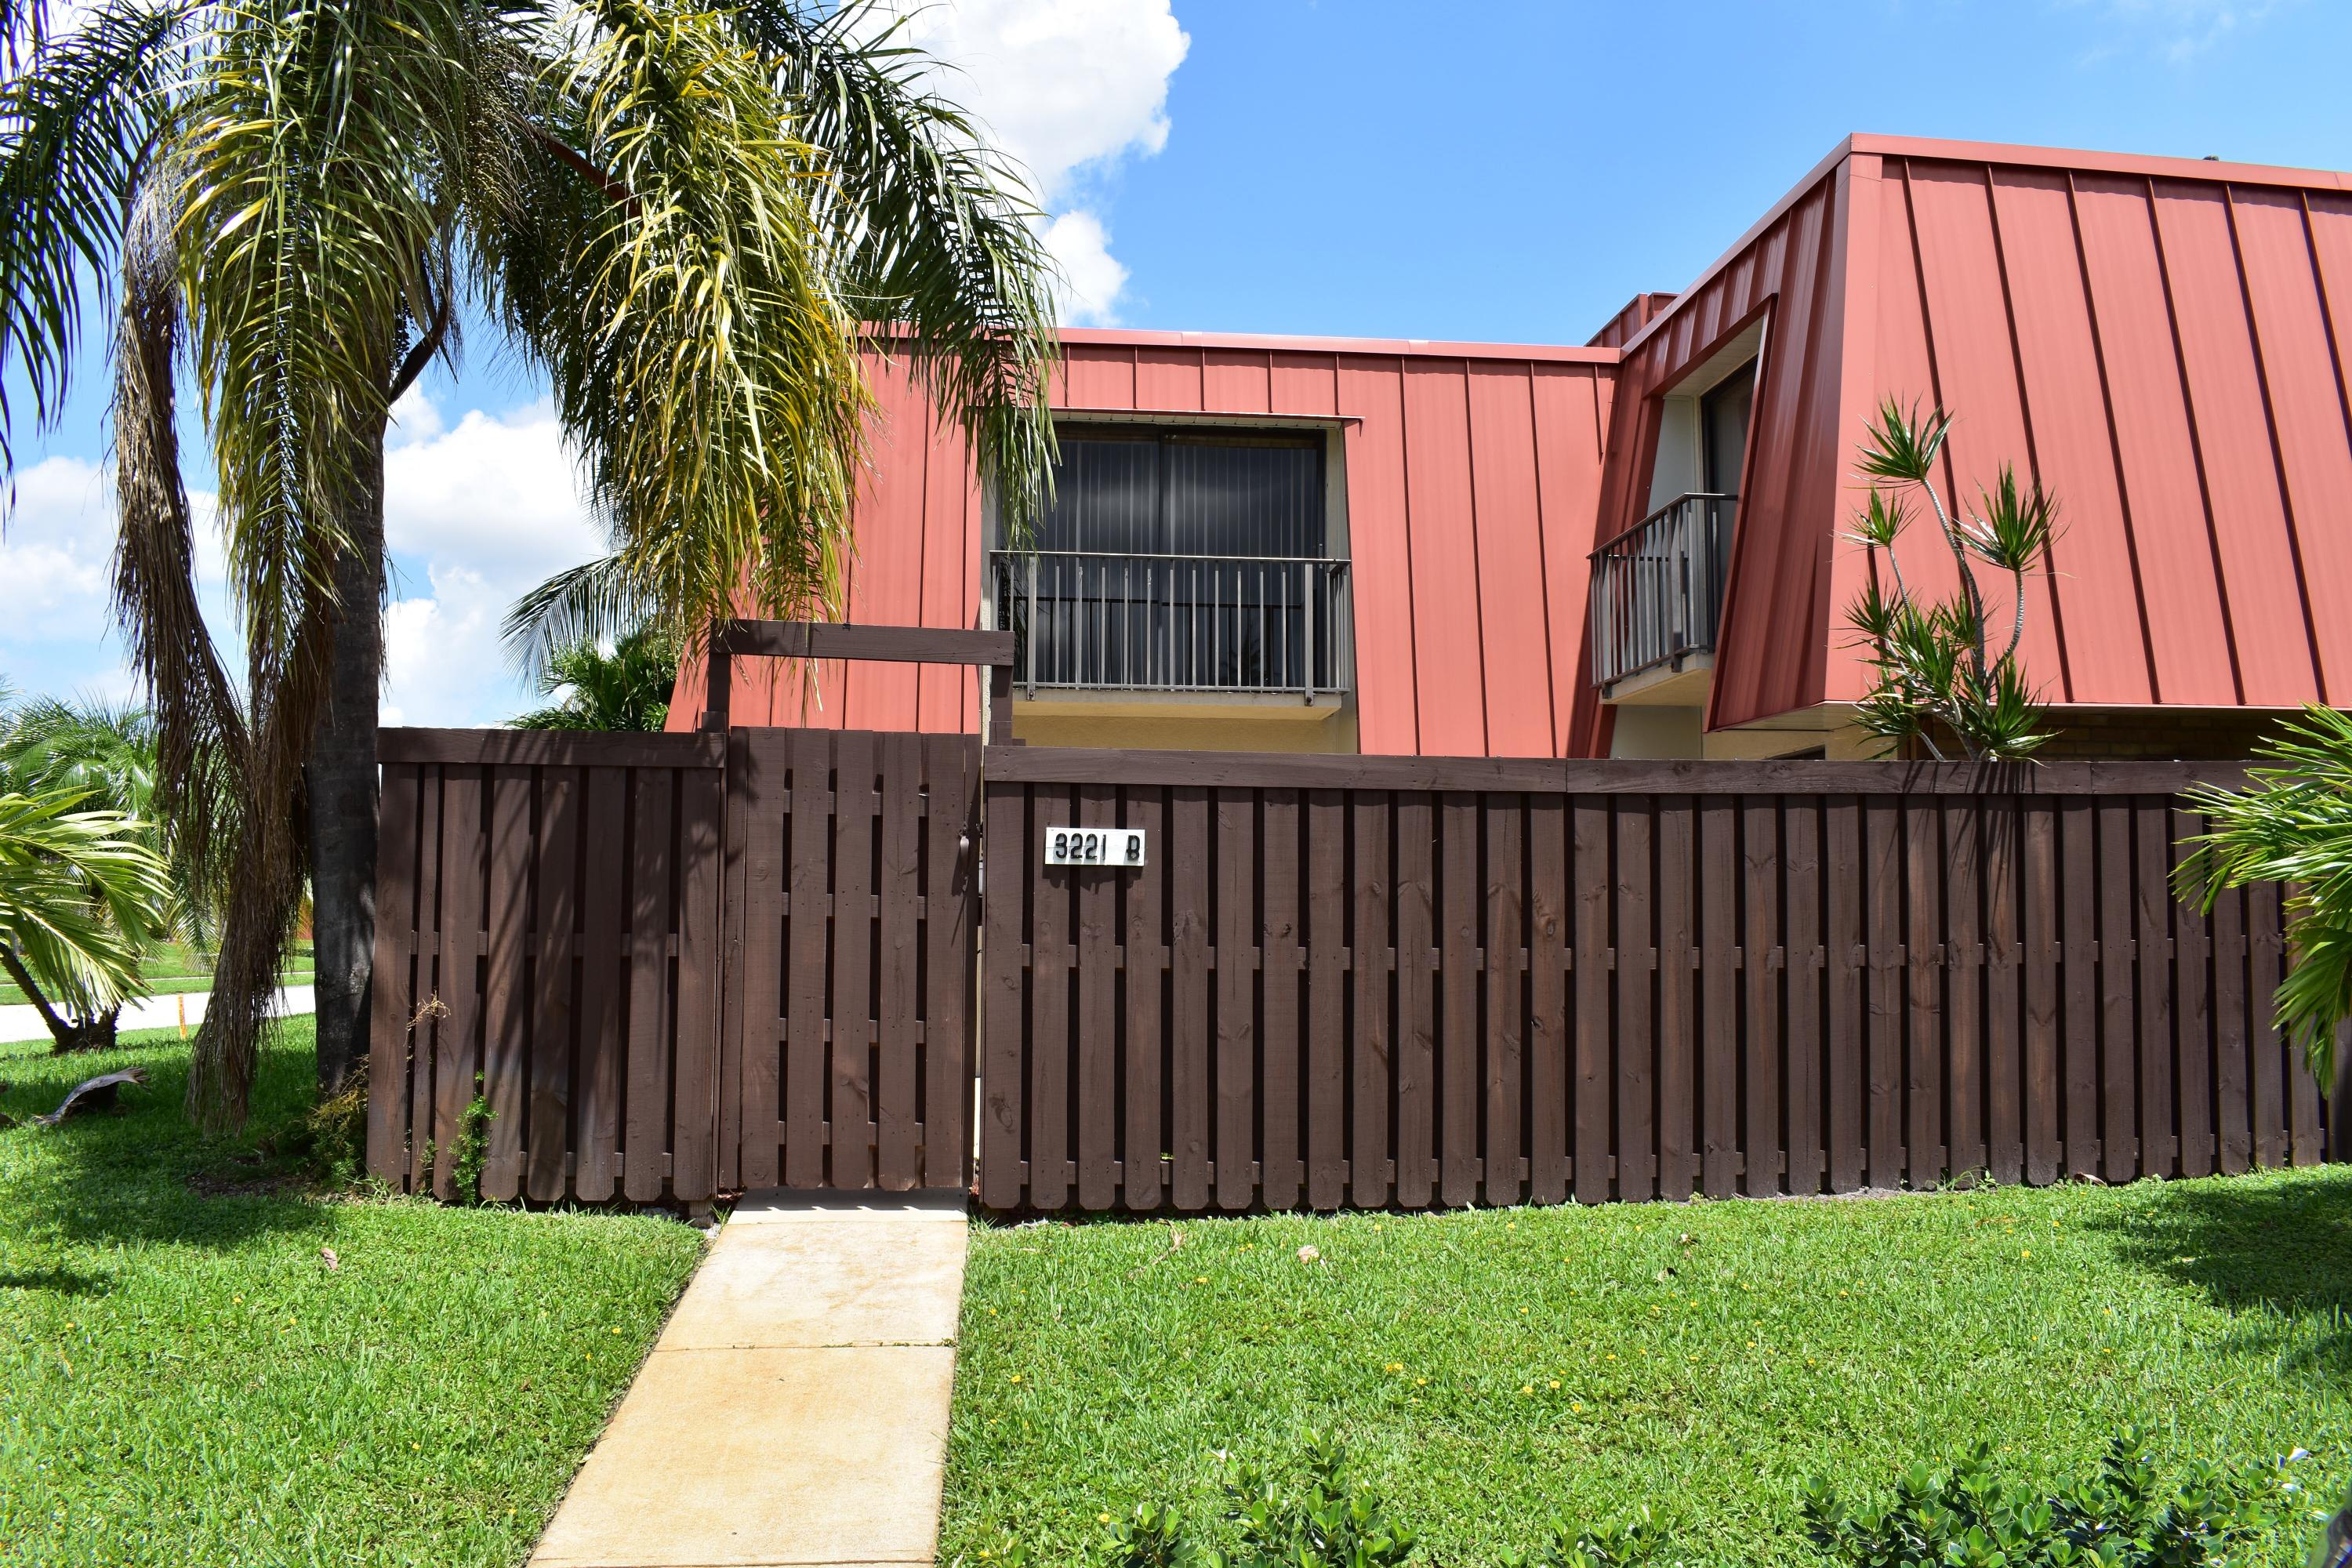 New Home for sale at 3221 Meridian Way S  in Palm Beach Gardens